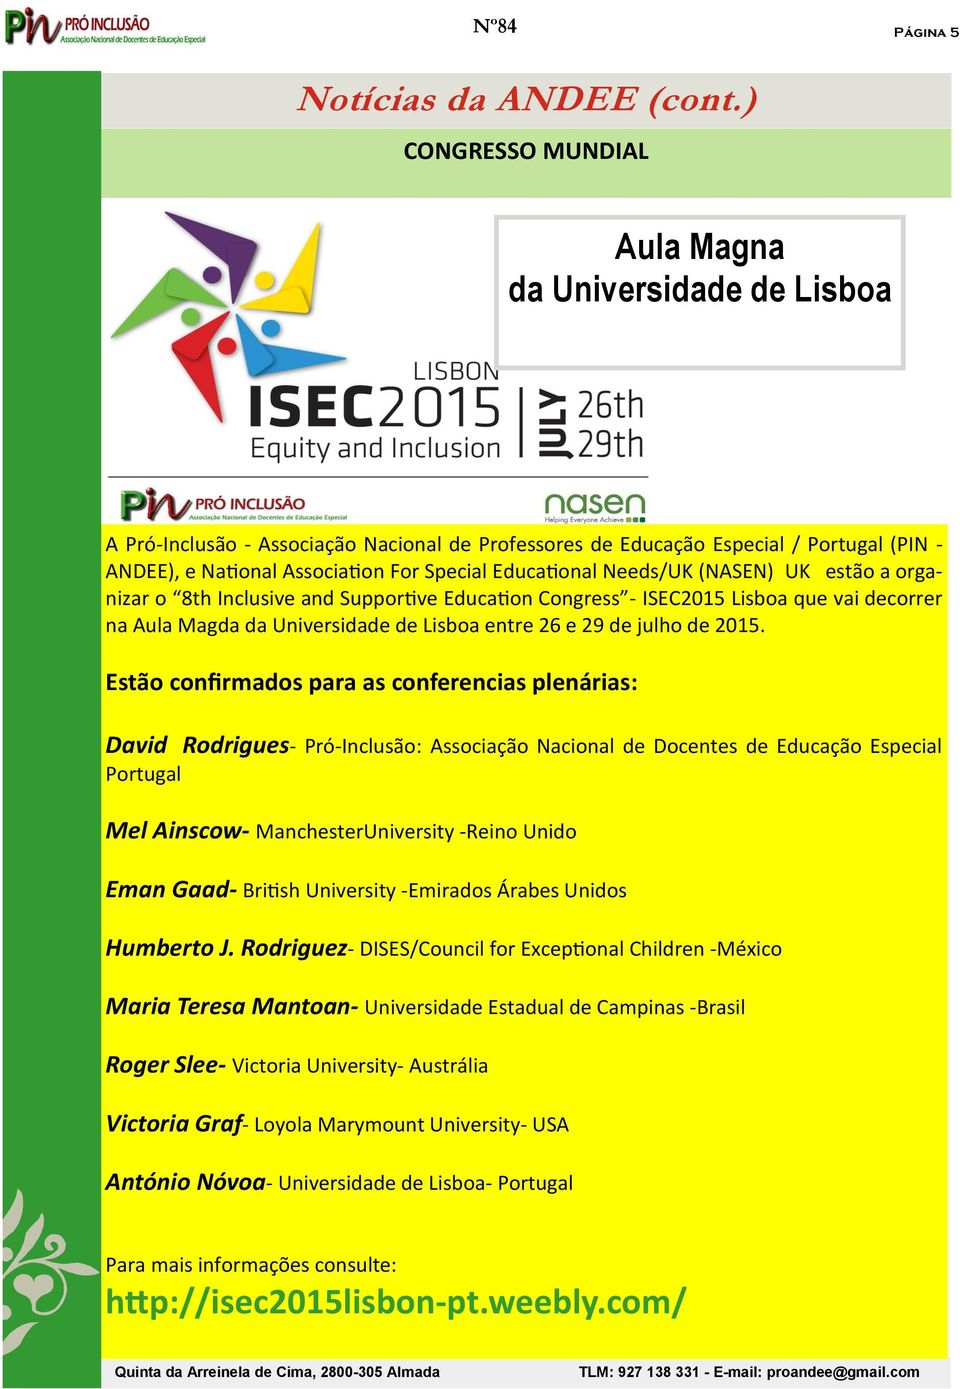 Educational Needs/UK (NASEN) UK estão a organizar o 8th Inclusive and Supportive Education Congress - ISEC2015 Lisboa que vai decorrer na Aula Magda da Universidade de Lisboa entre 26 e 29 de julho